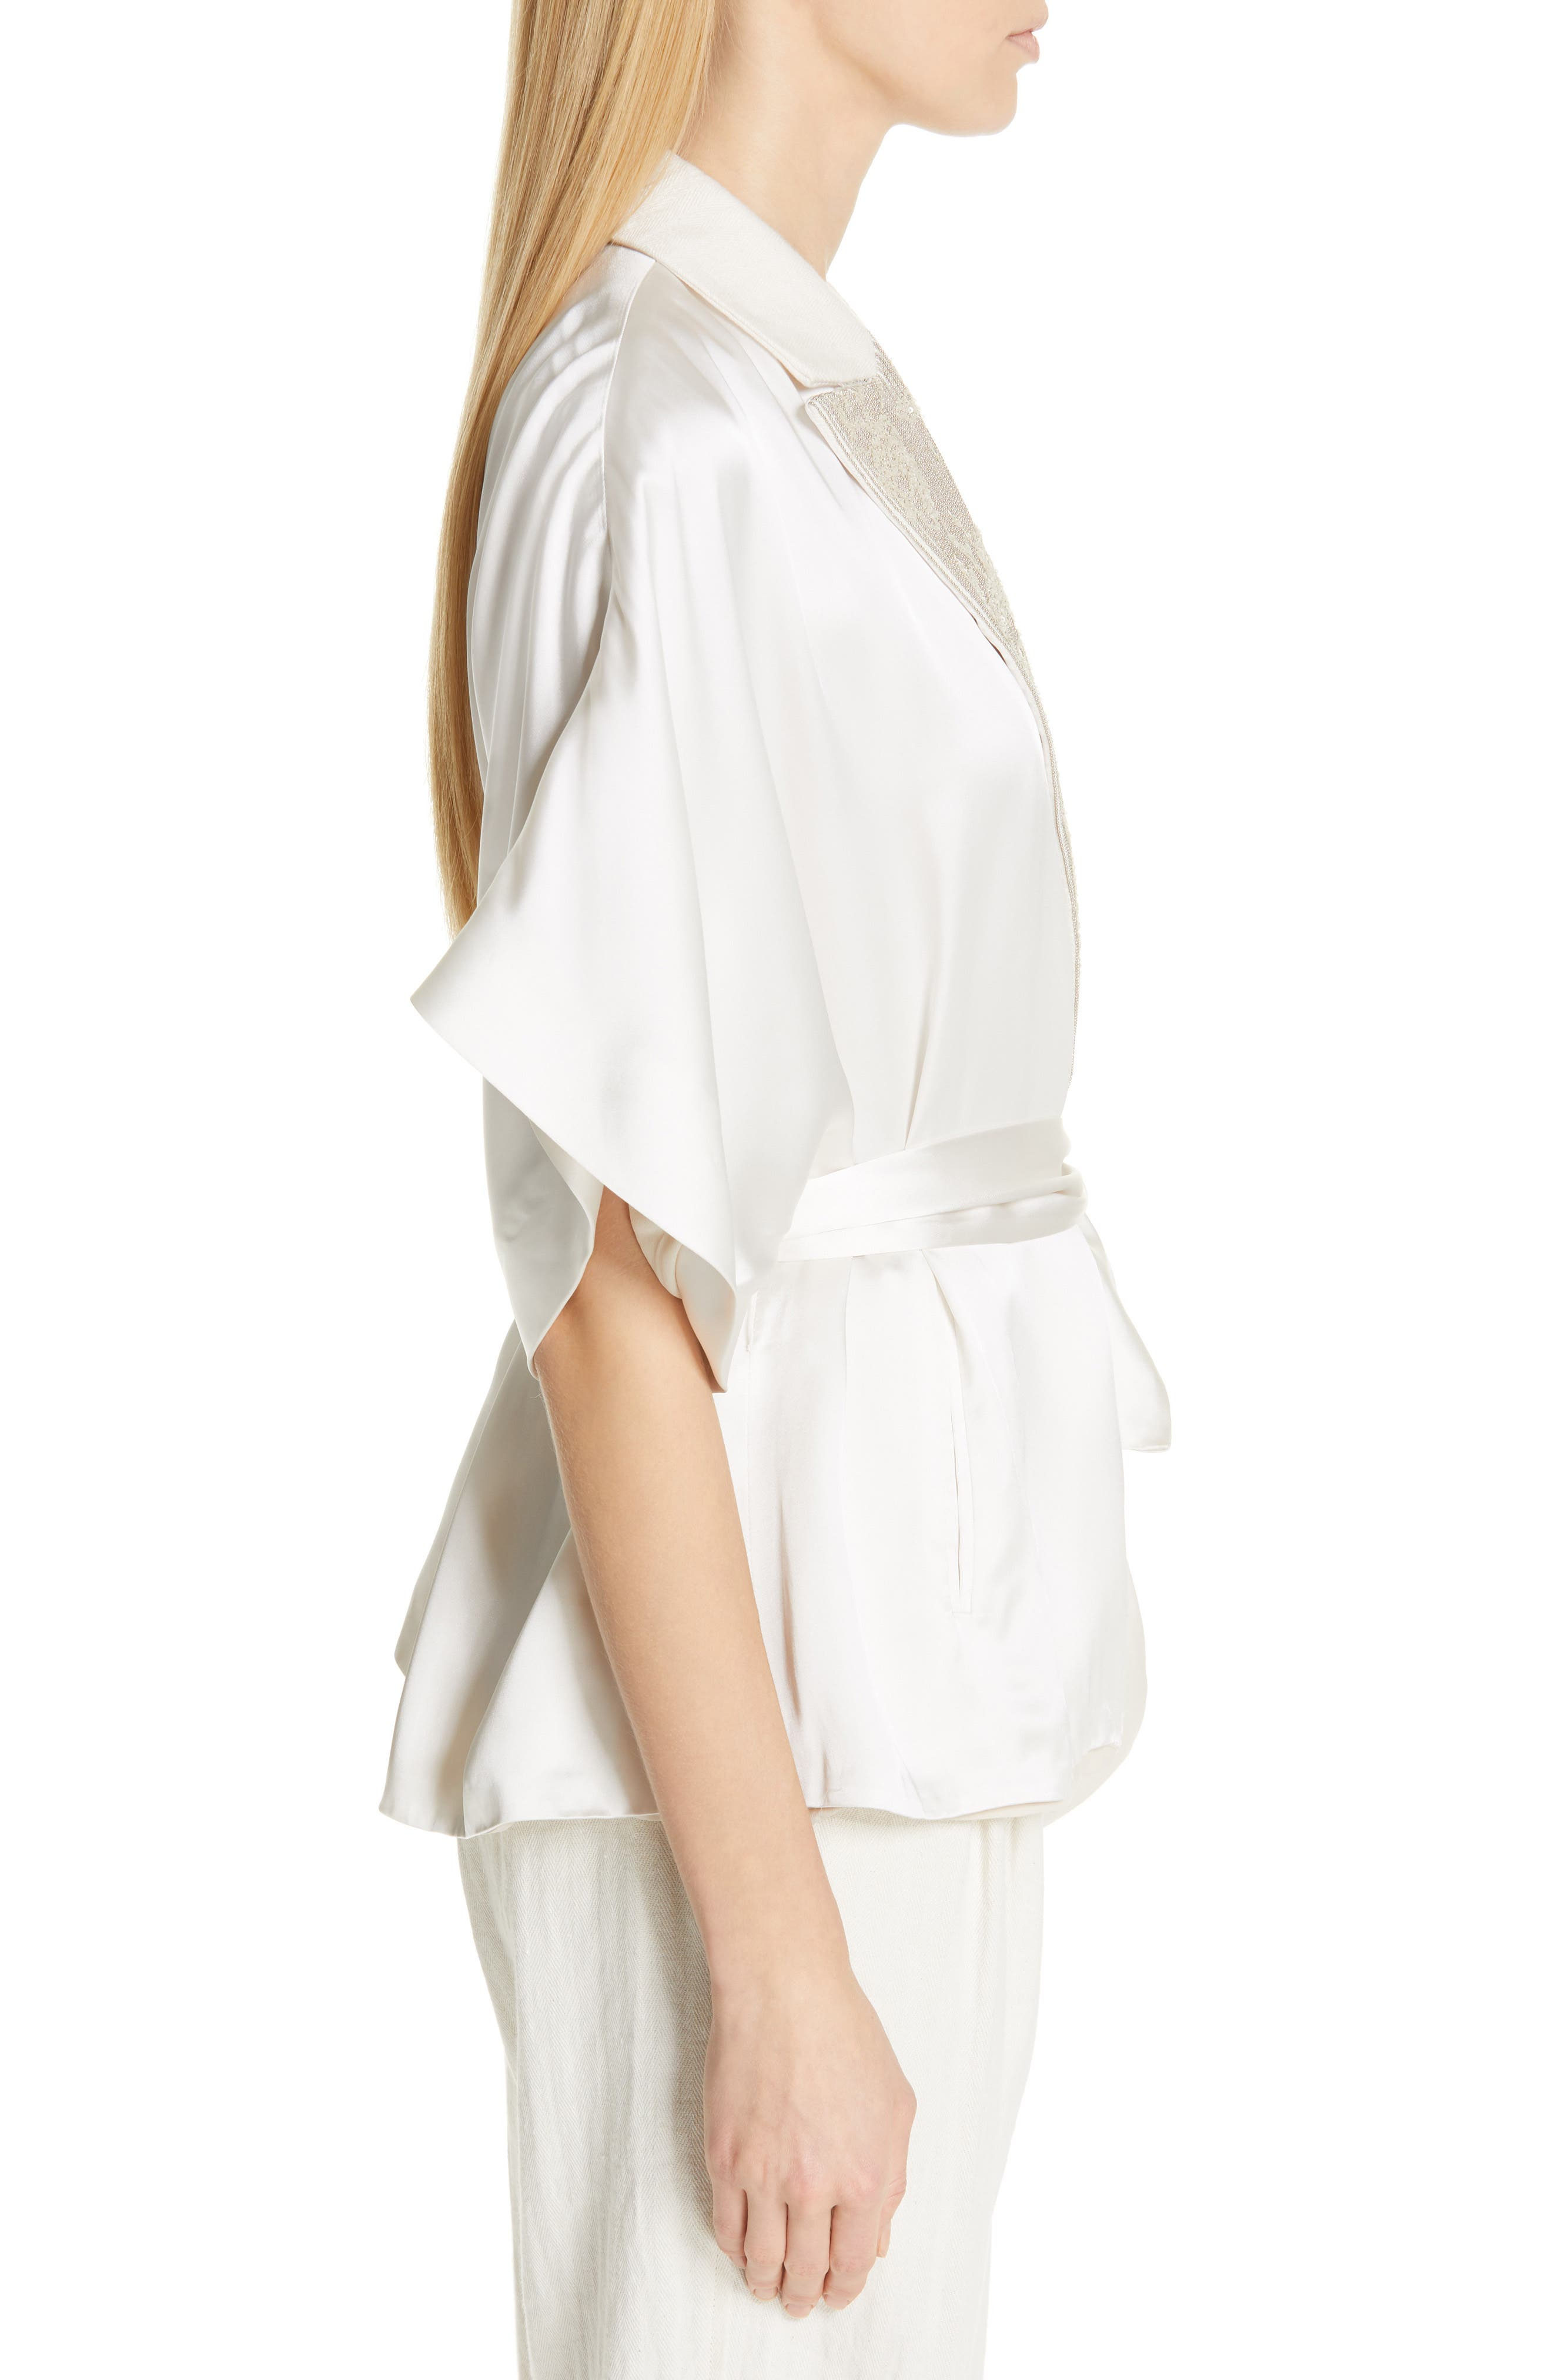 BRUNELLO CUCINELLI,                             Embellished Lapel Satin Kimono Jacket,                             Alternate thumbnail 3, color,                             BONE